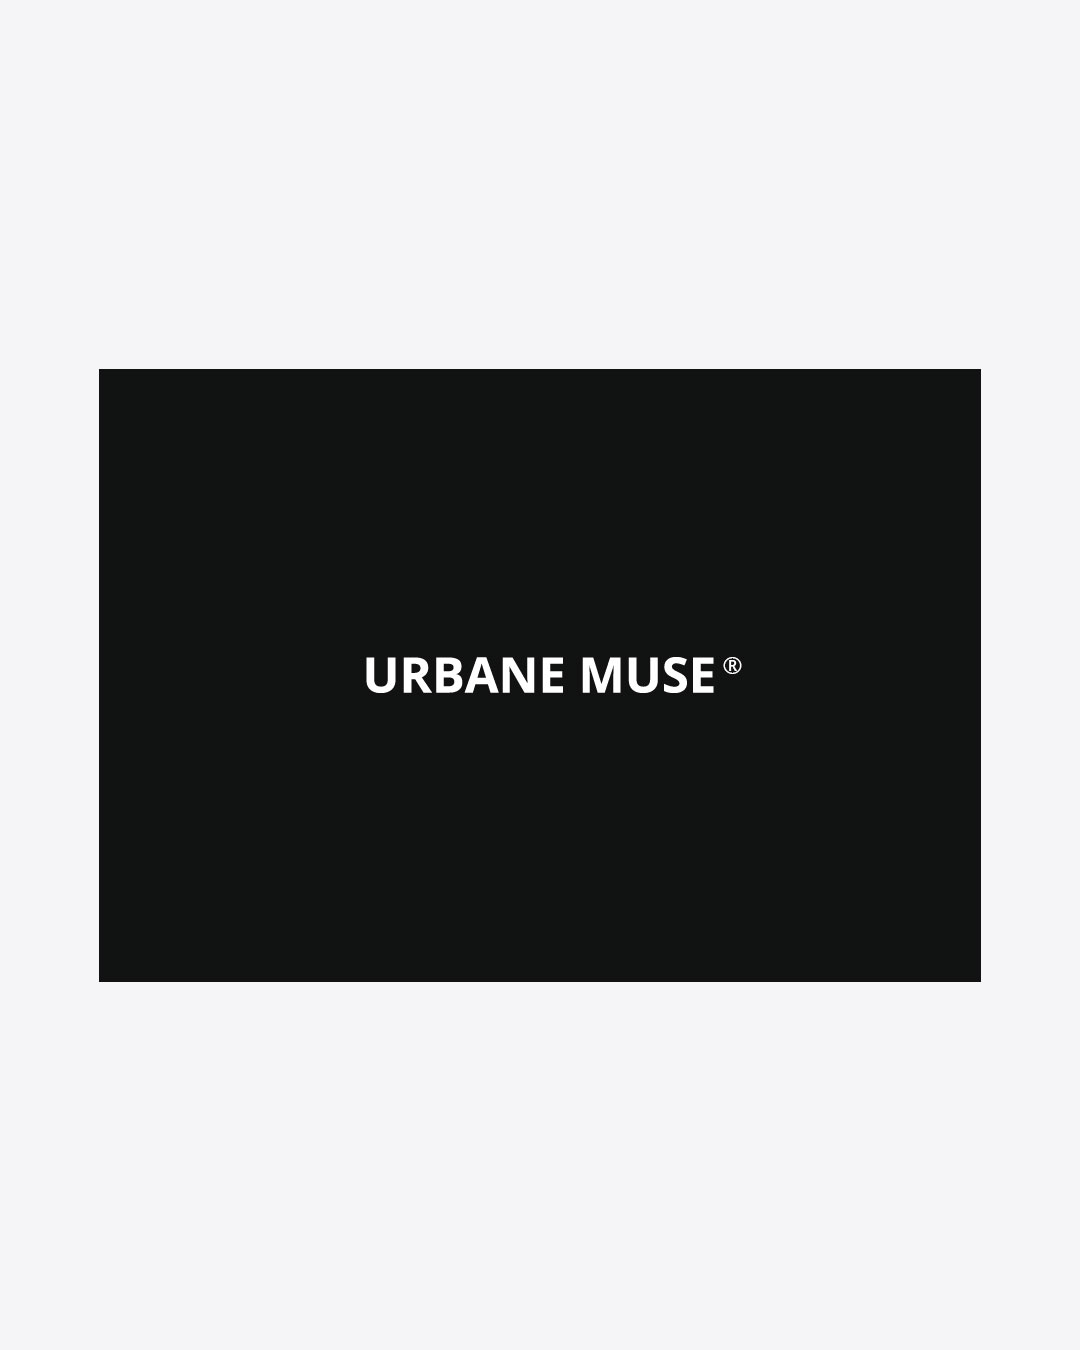 URBANE MUSE® CHRIS SMITH